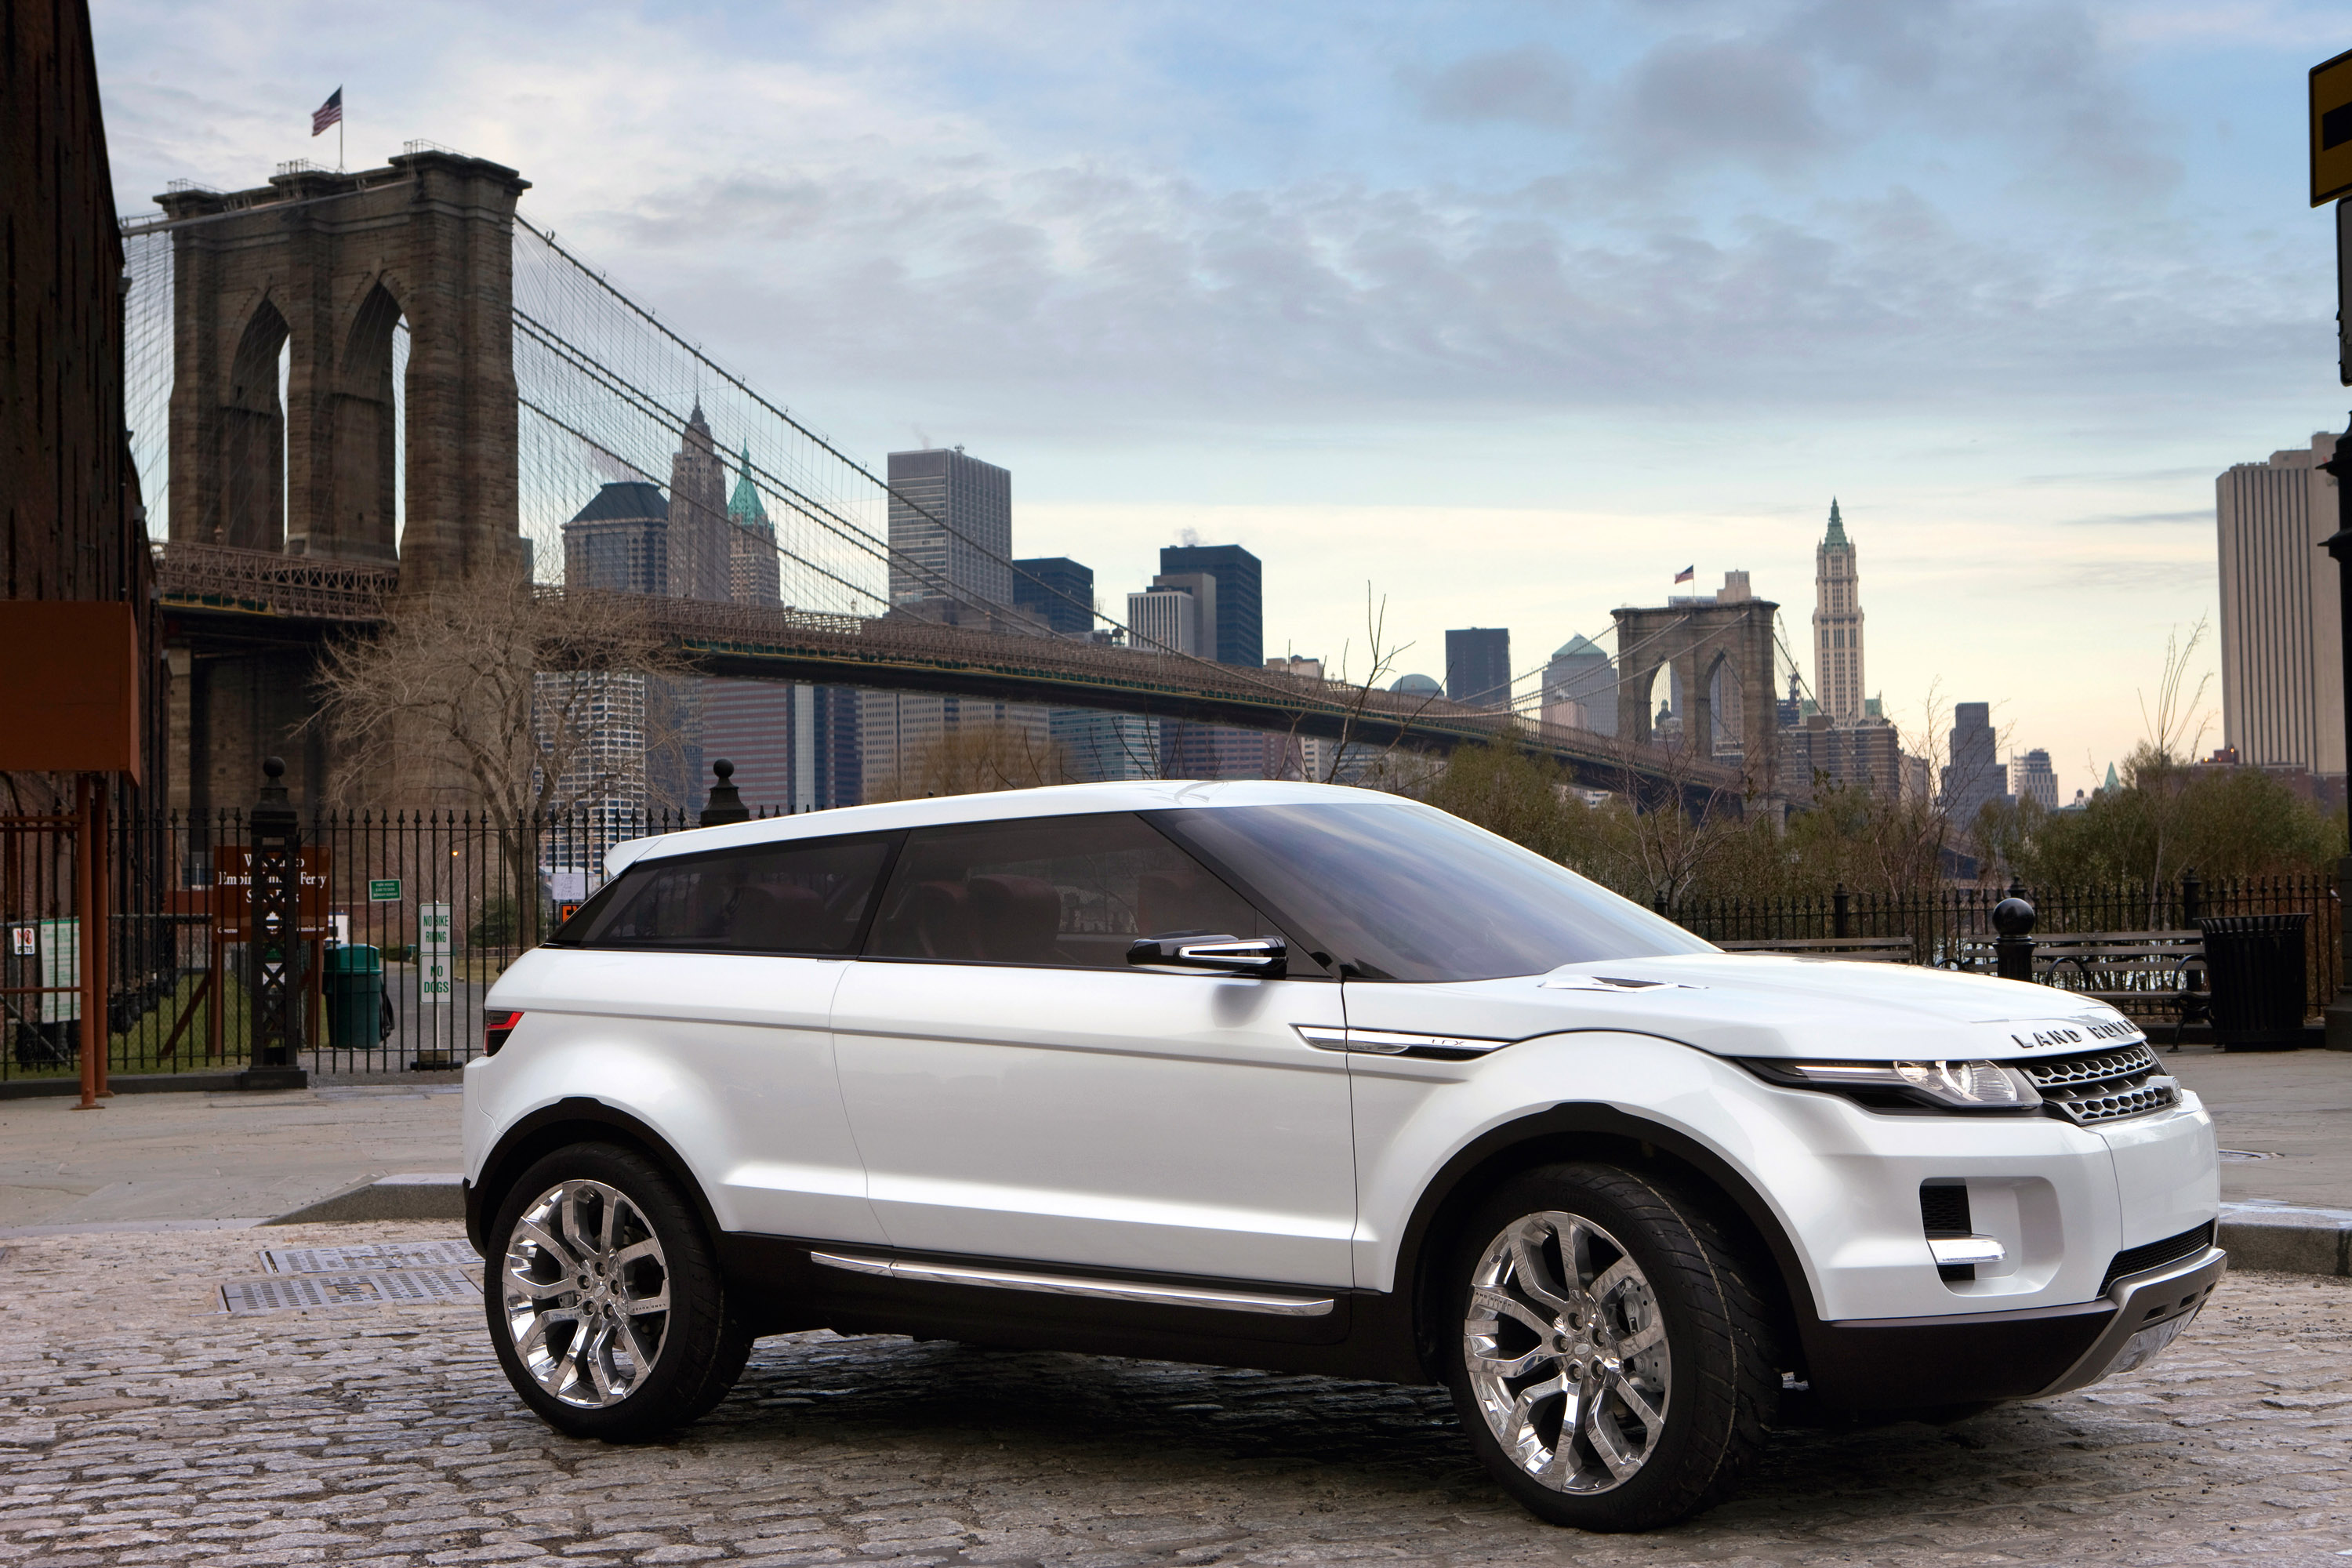 Range Rover LRX concept confirmed for production